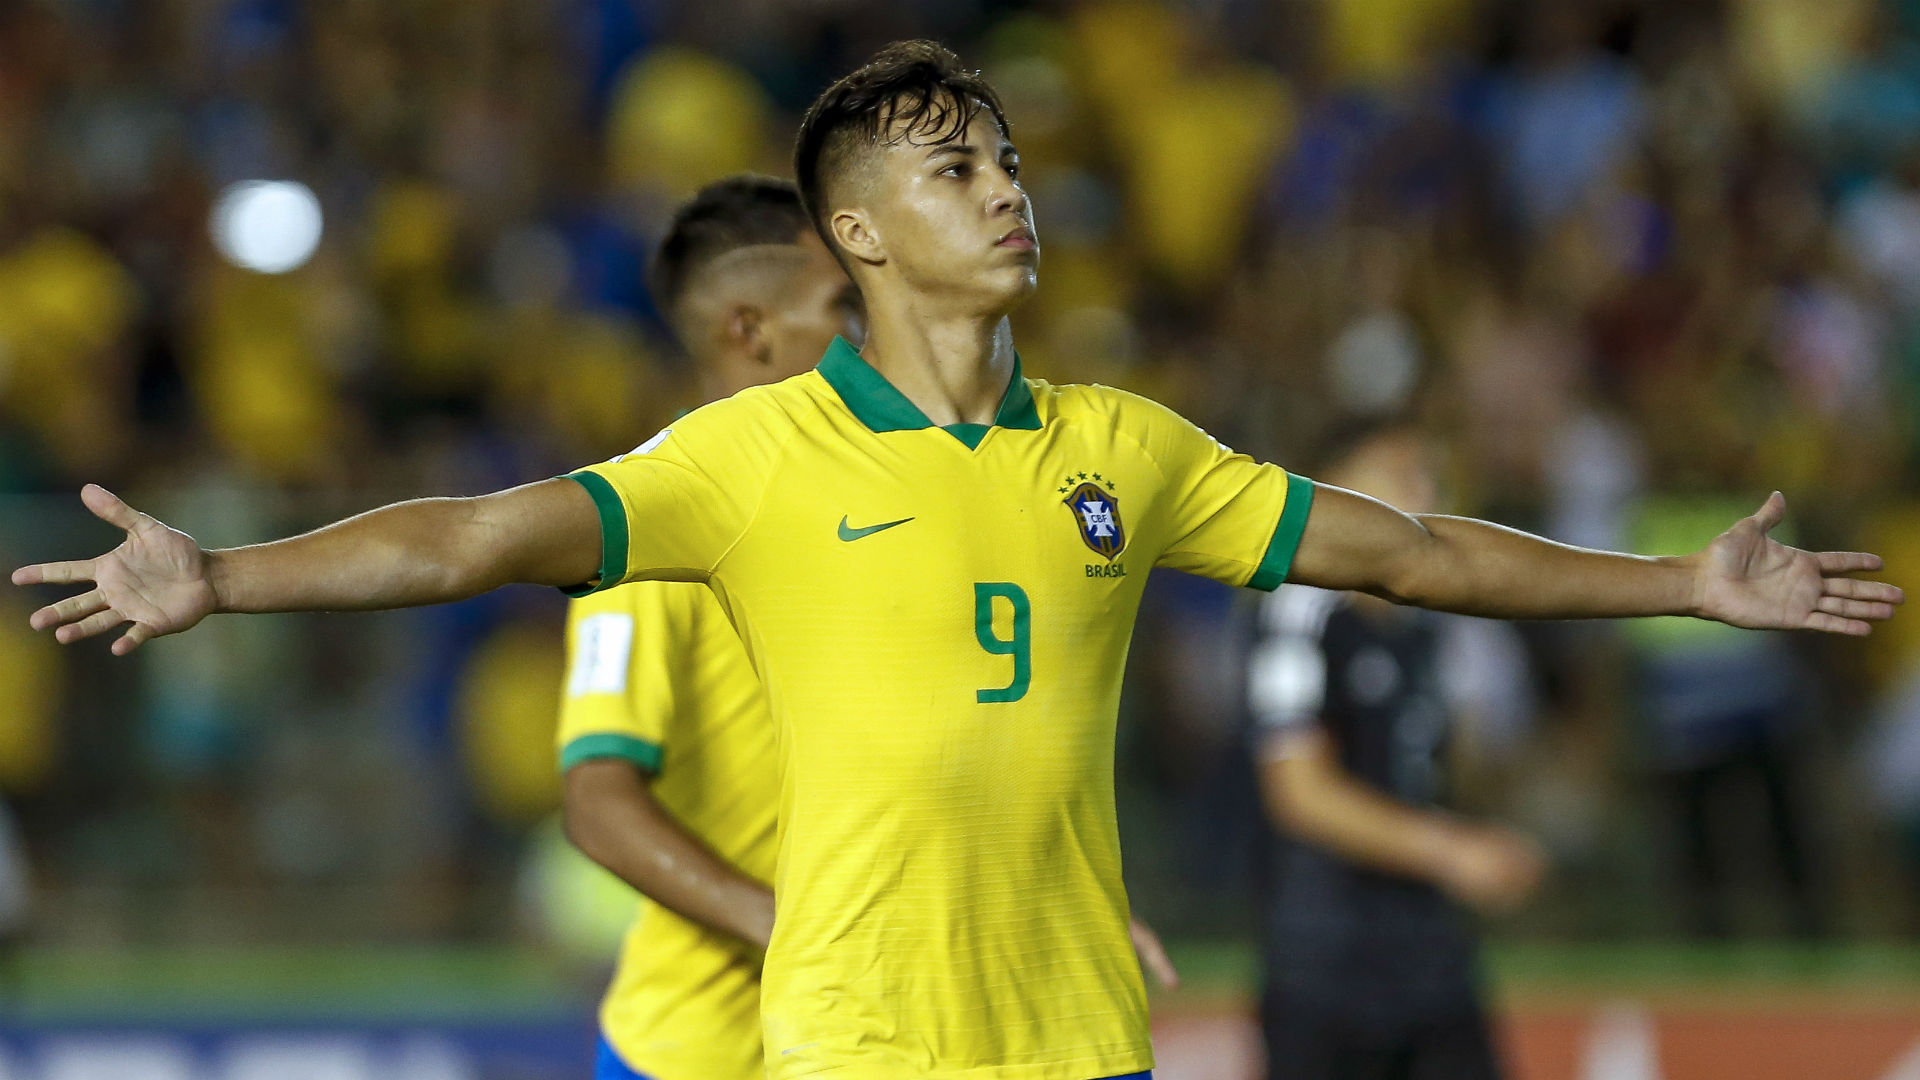 Serie A giants in hot pursuit of 'New Neymar'